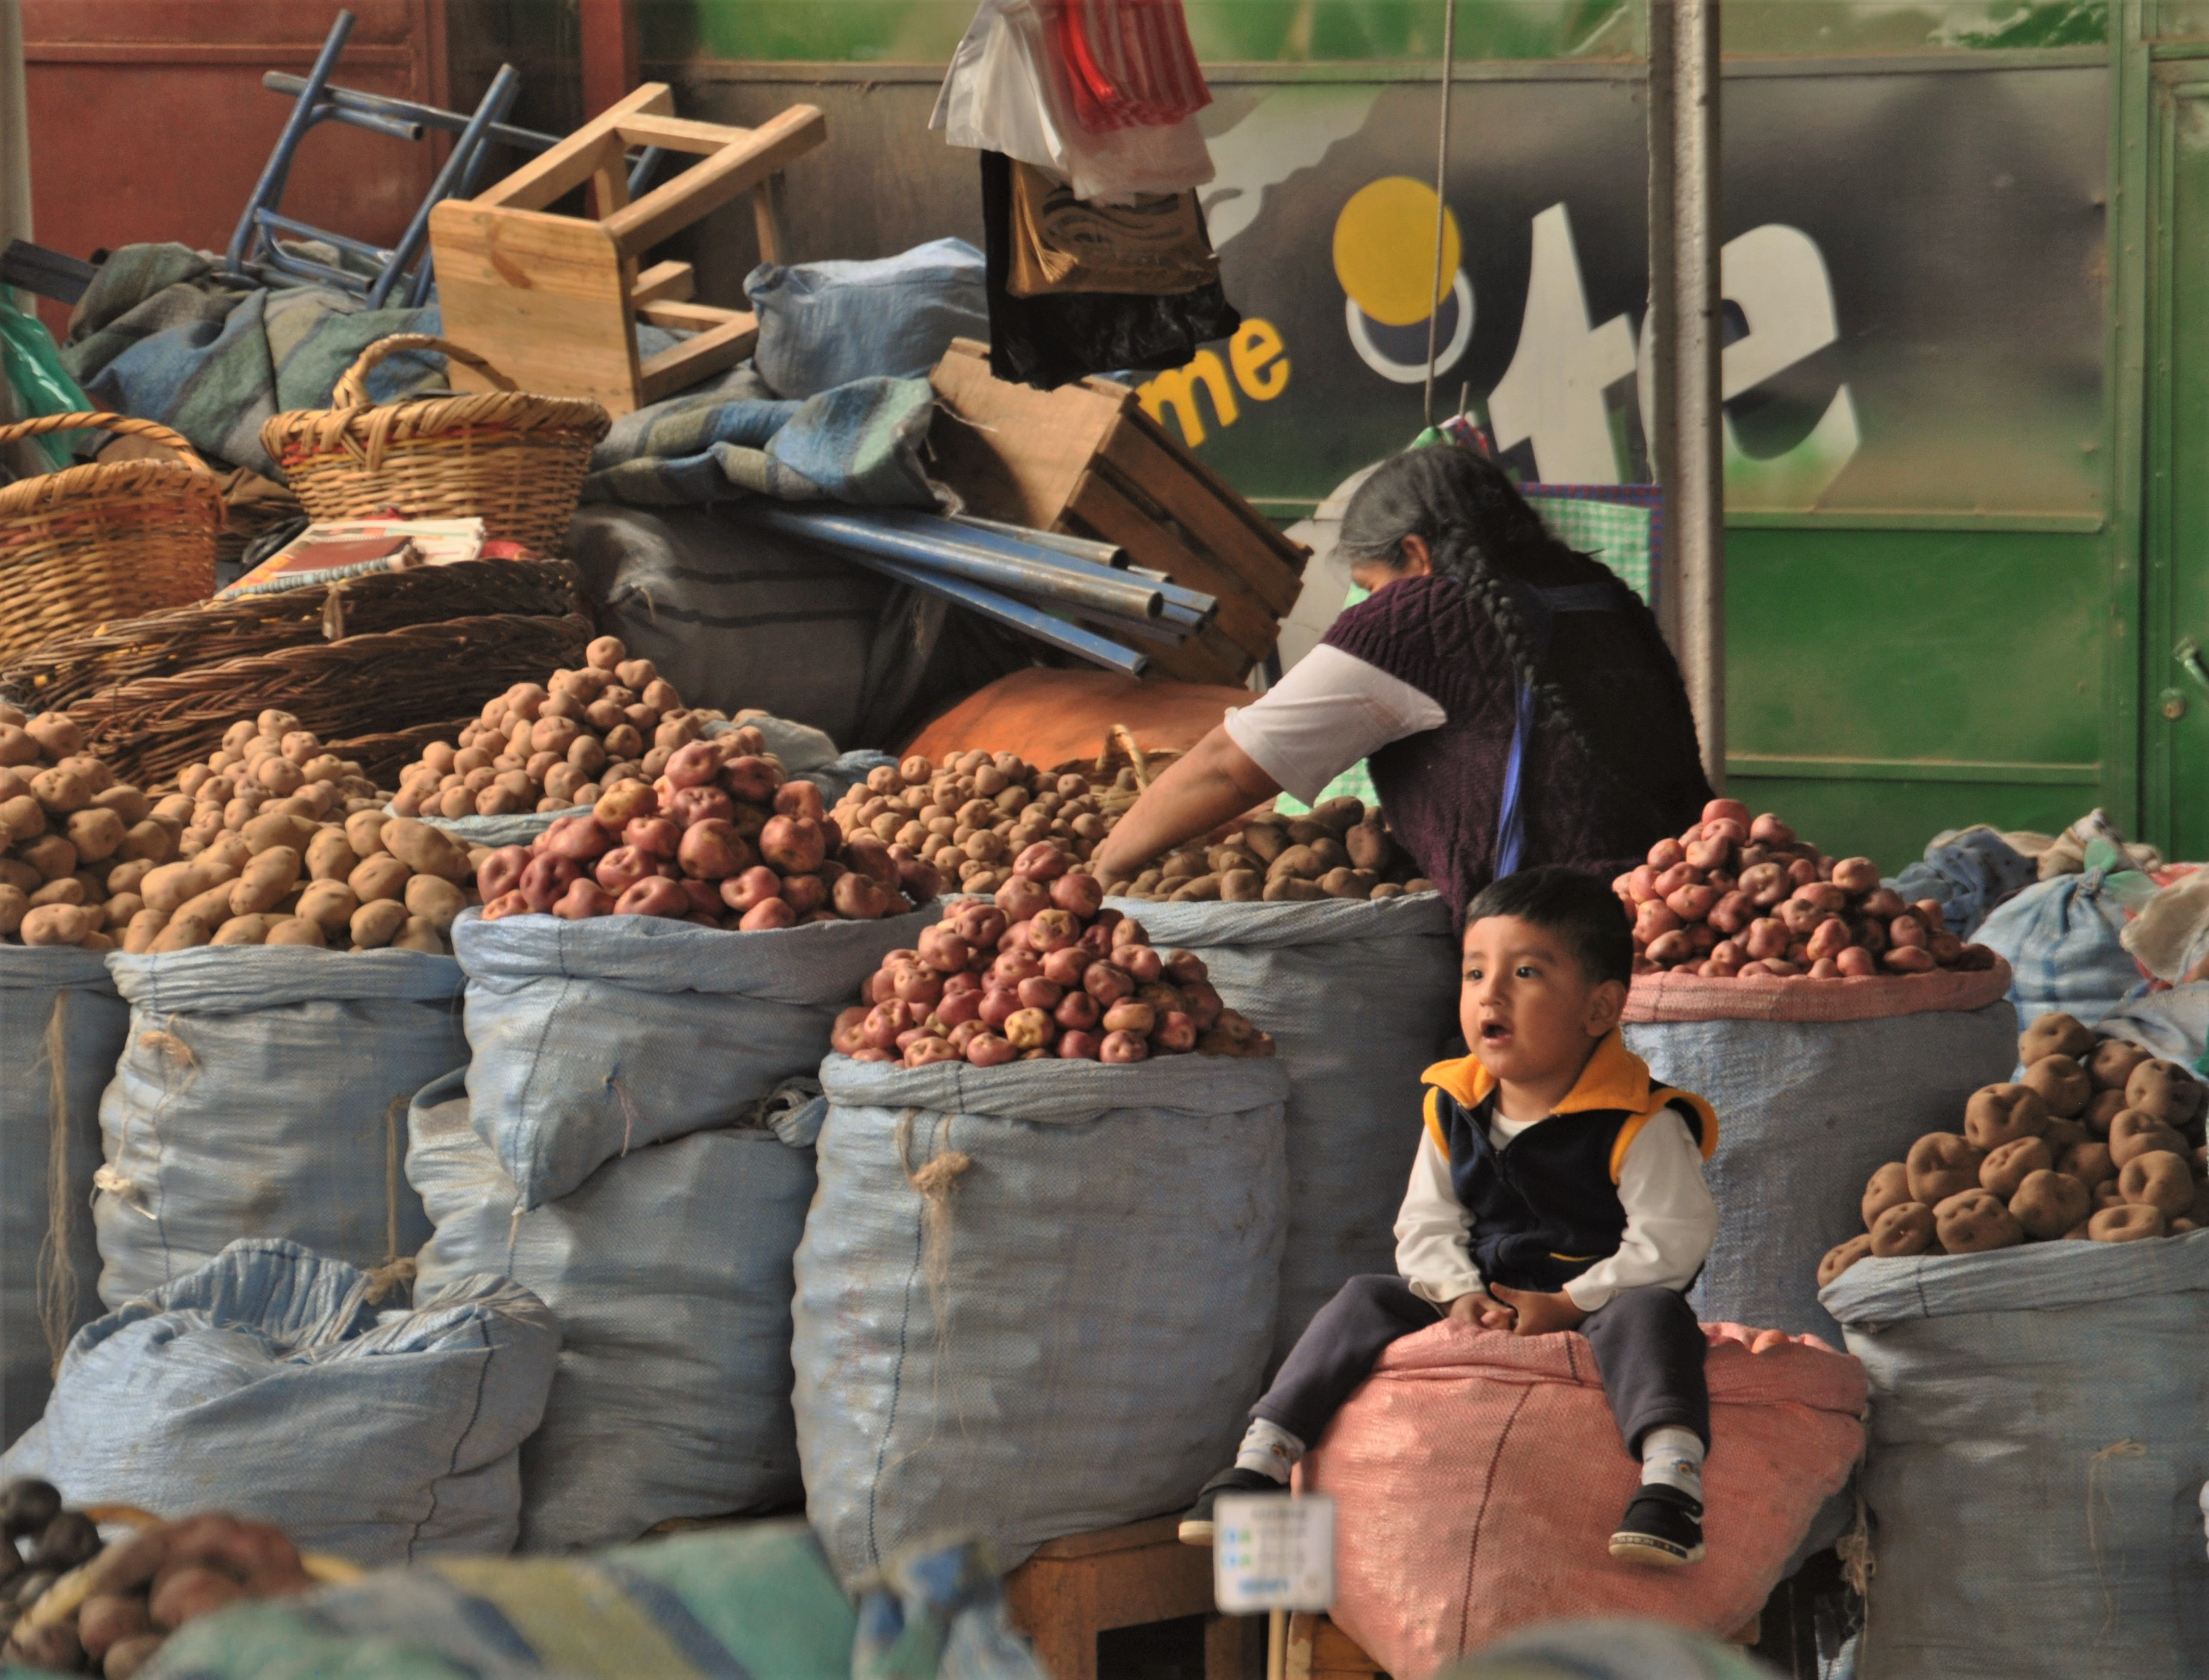 Busy market with potatoes - Matthew Lightfoot